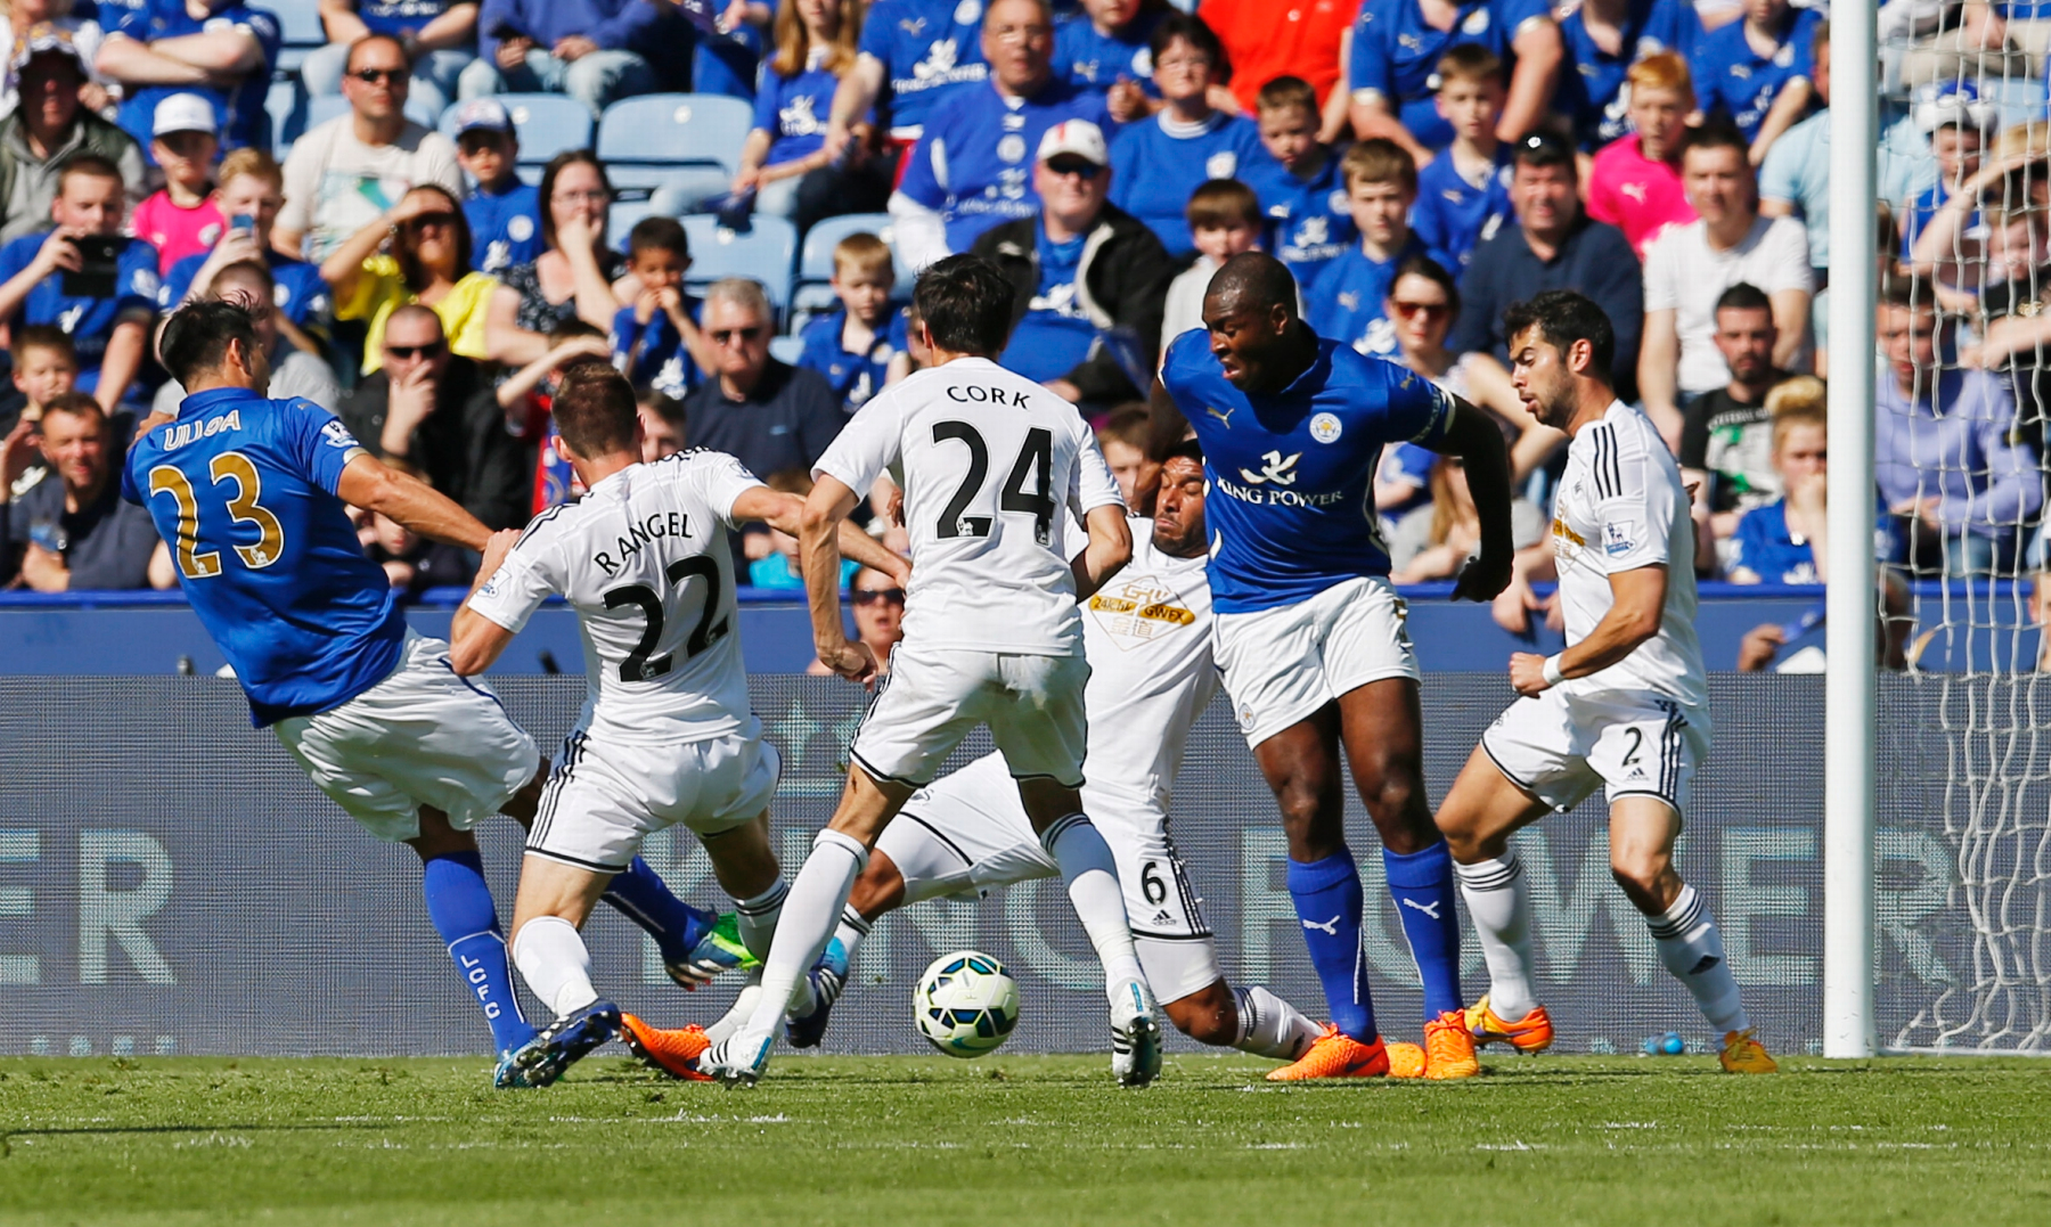 Can Leicester register their first win of the season against Swansea?